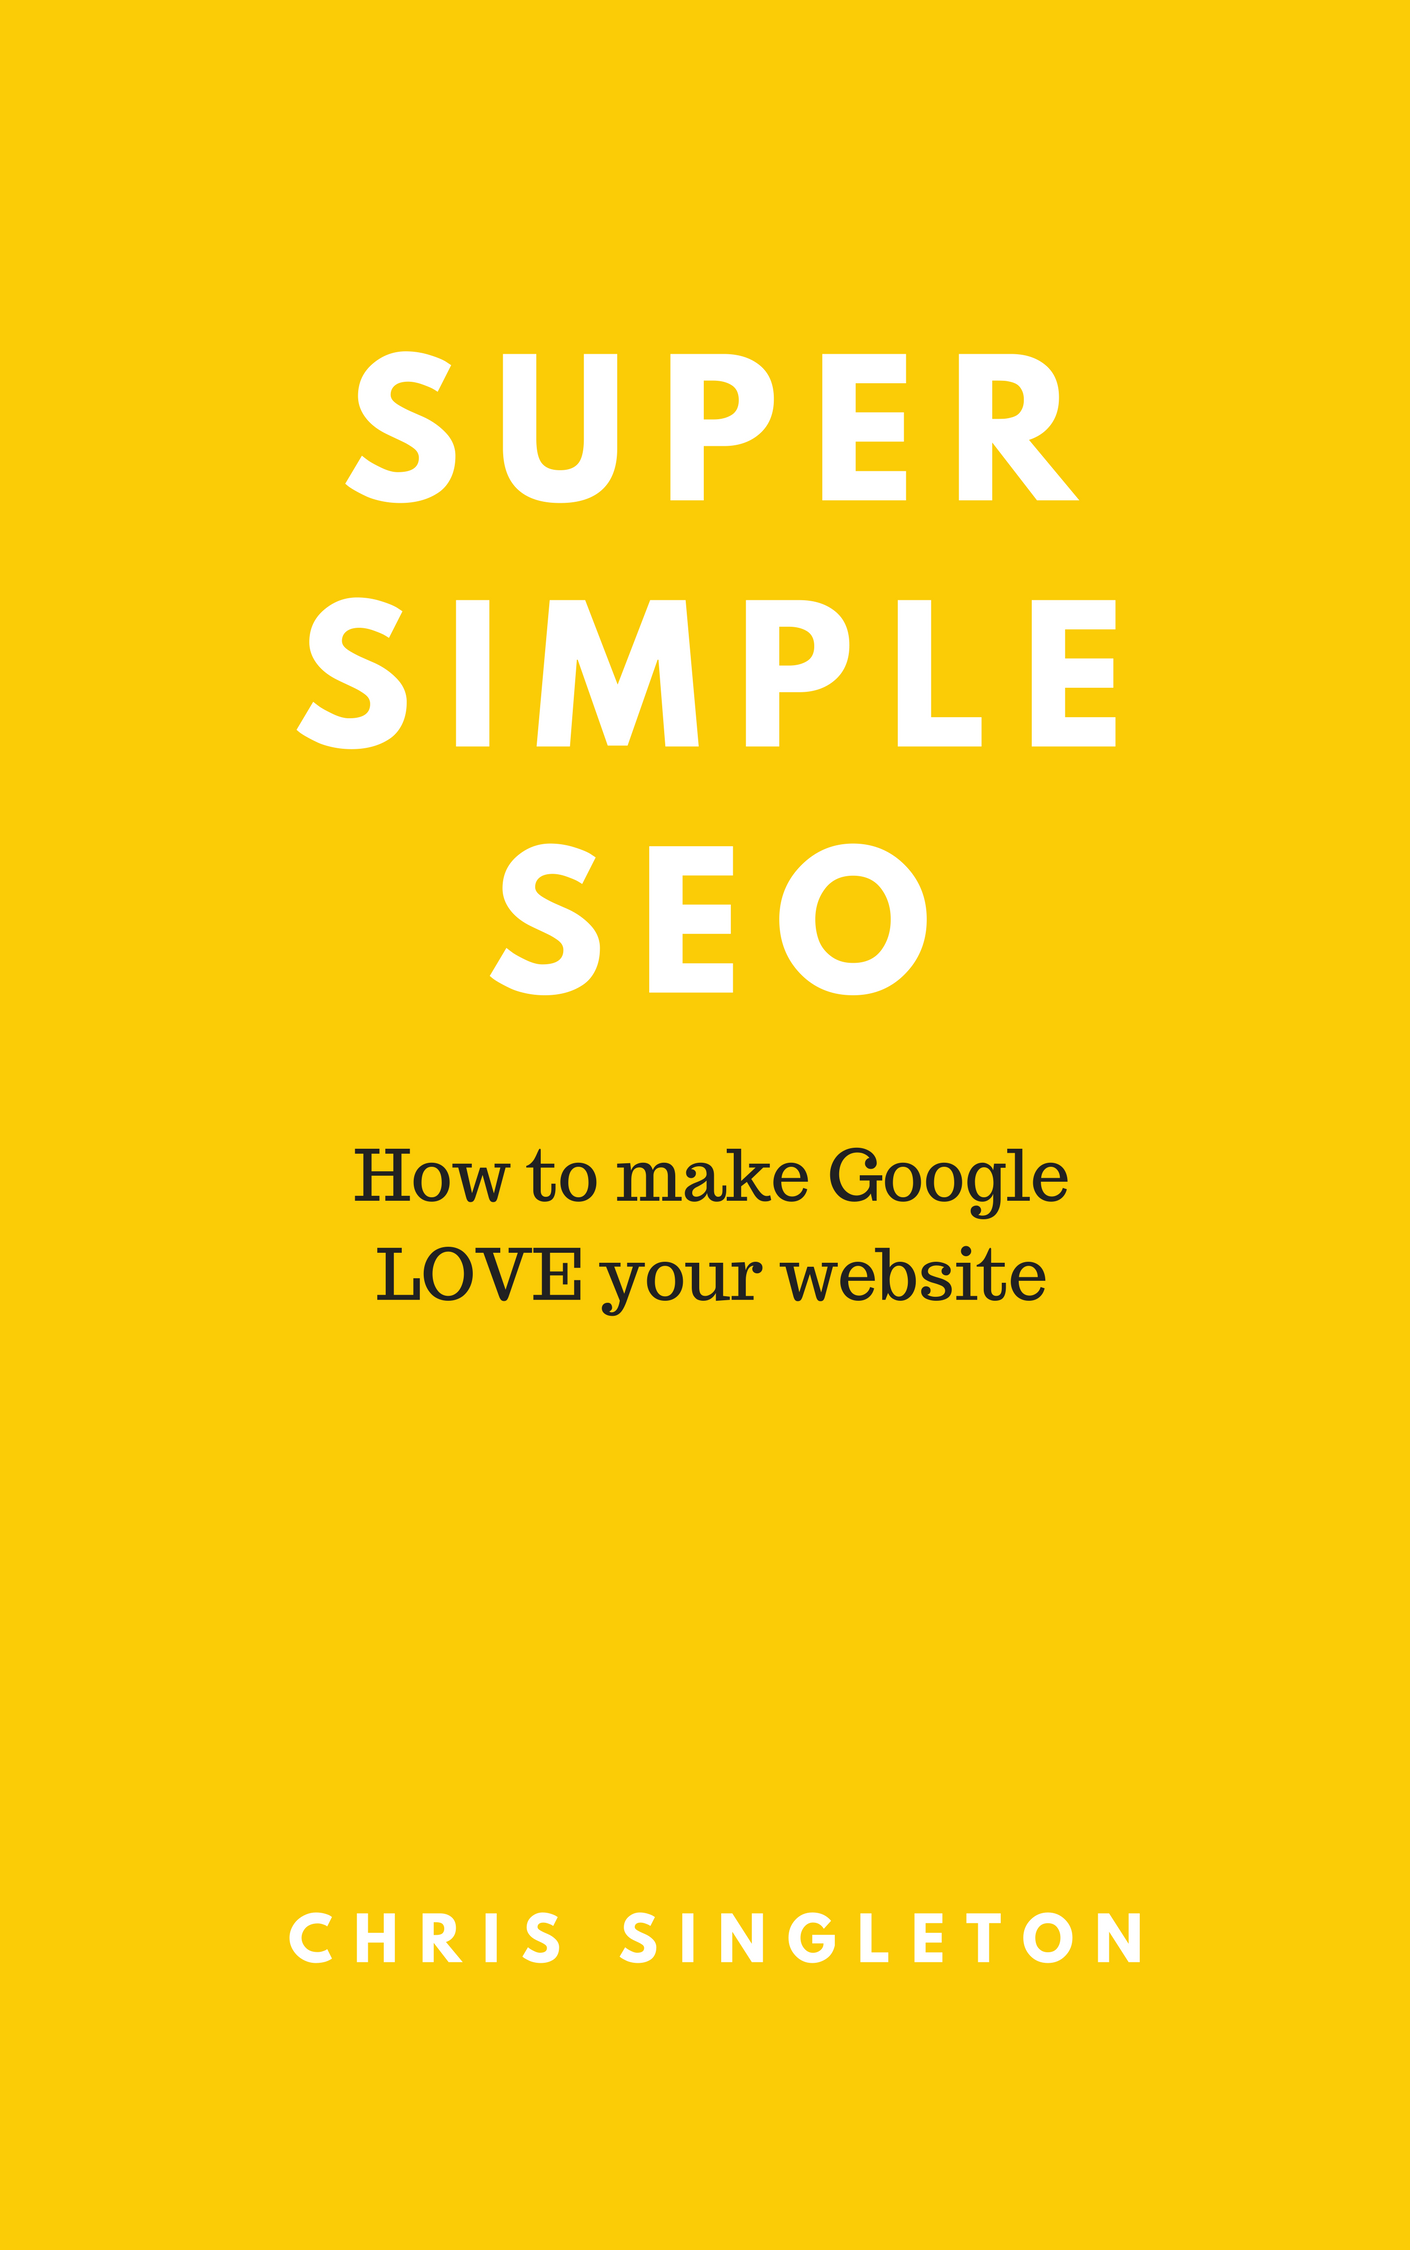 Super Simple SEO